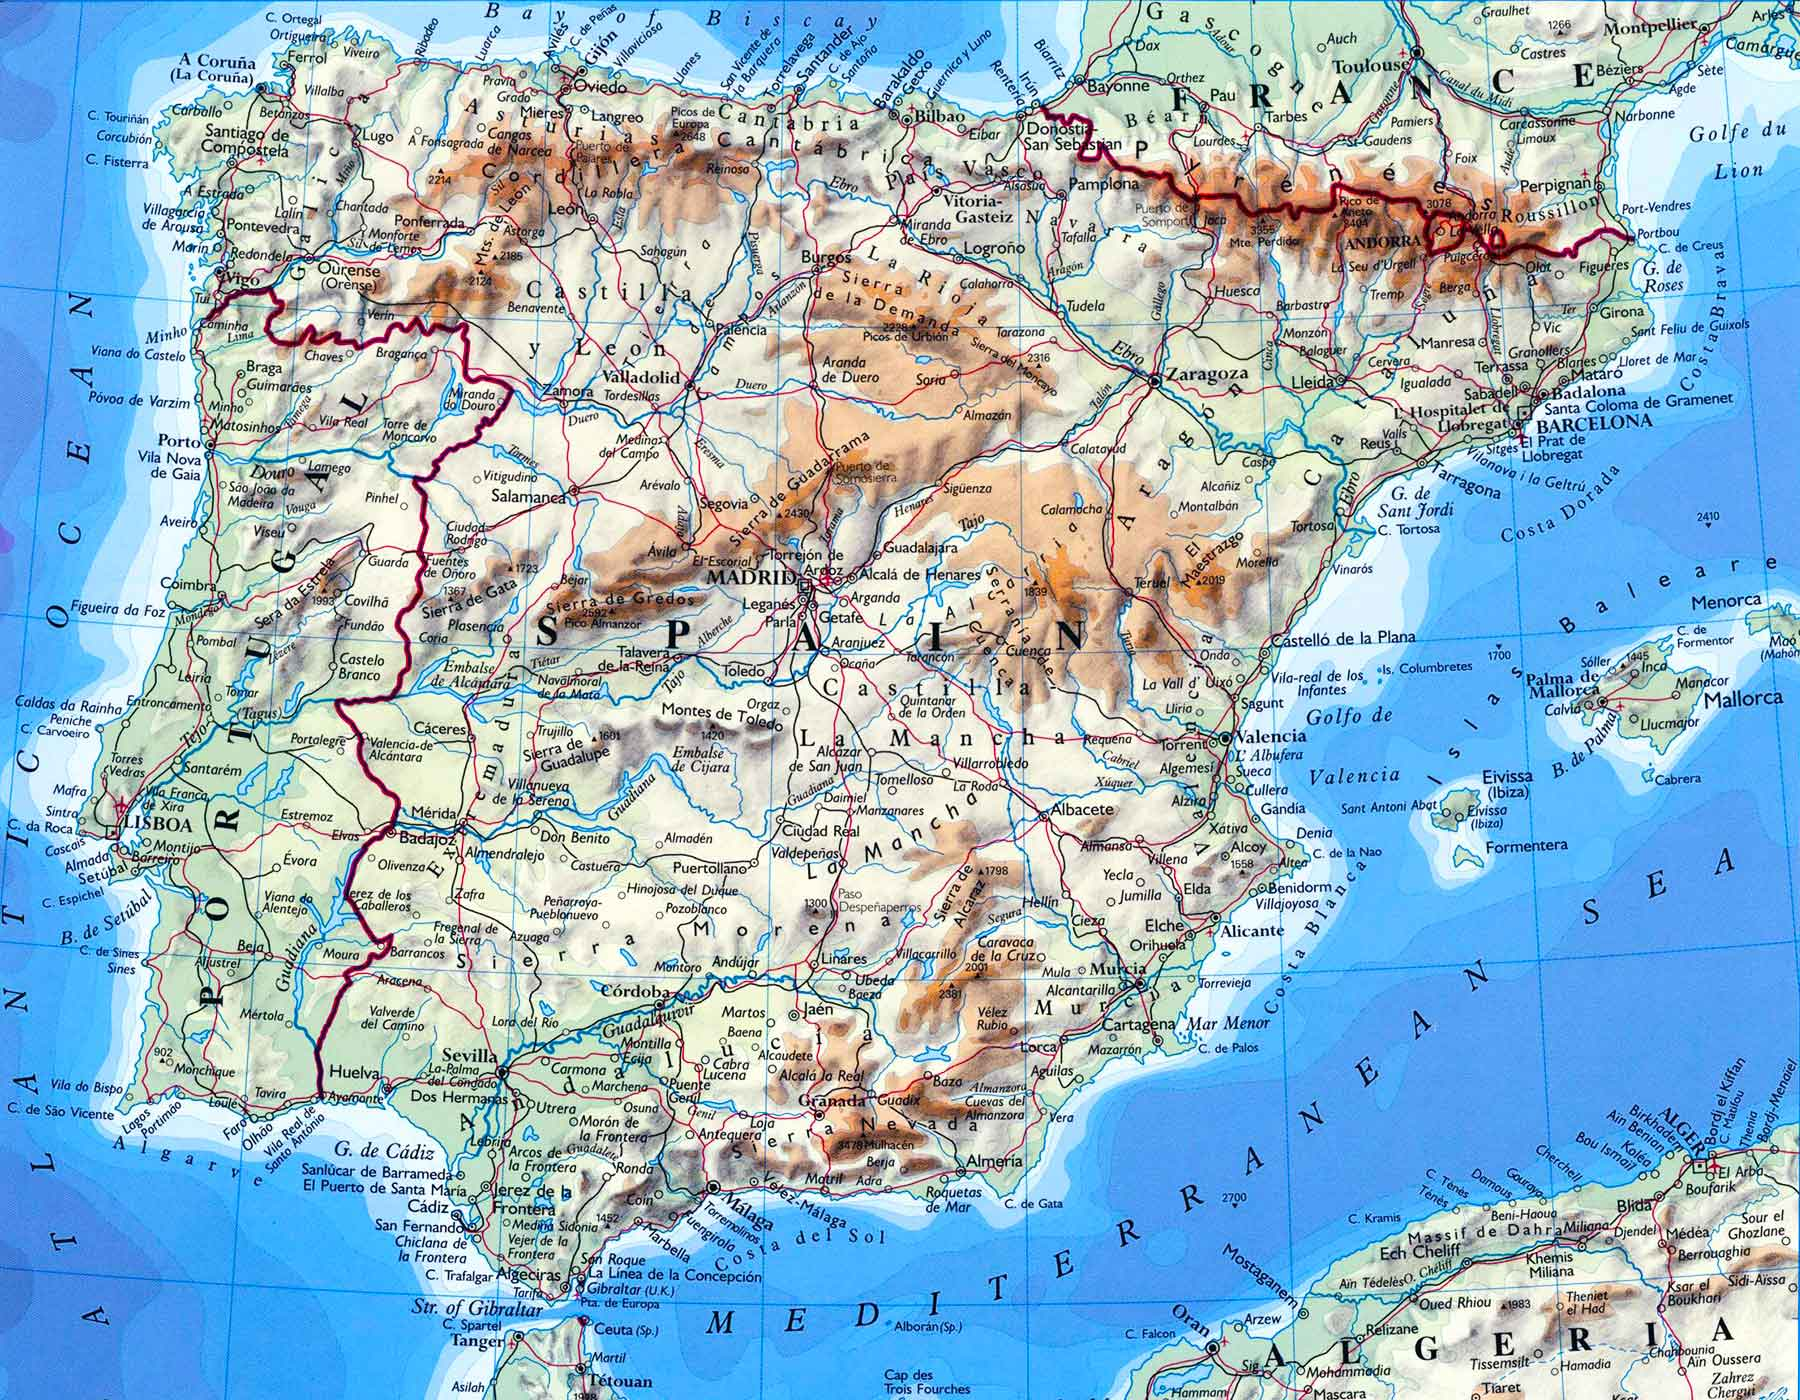 Map of Spain | Study Abroad Photo Journal - Steven Andrew Martin PhD - Education and Learning